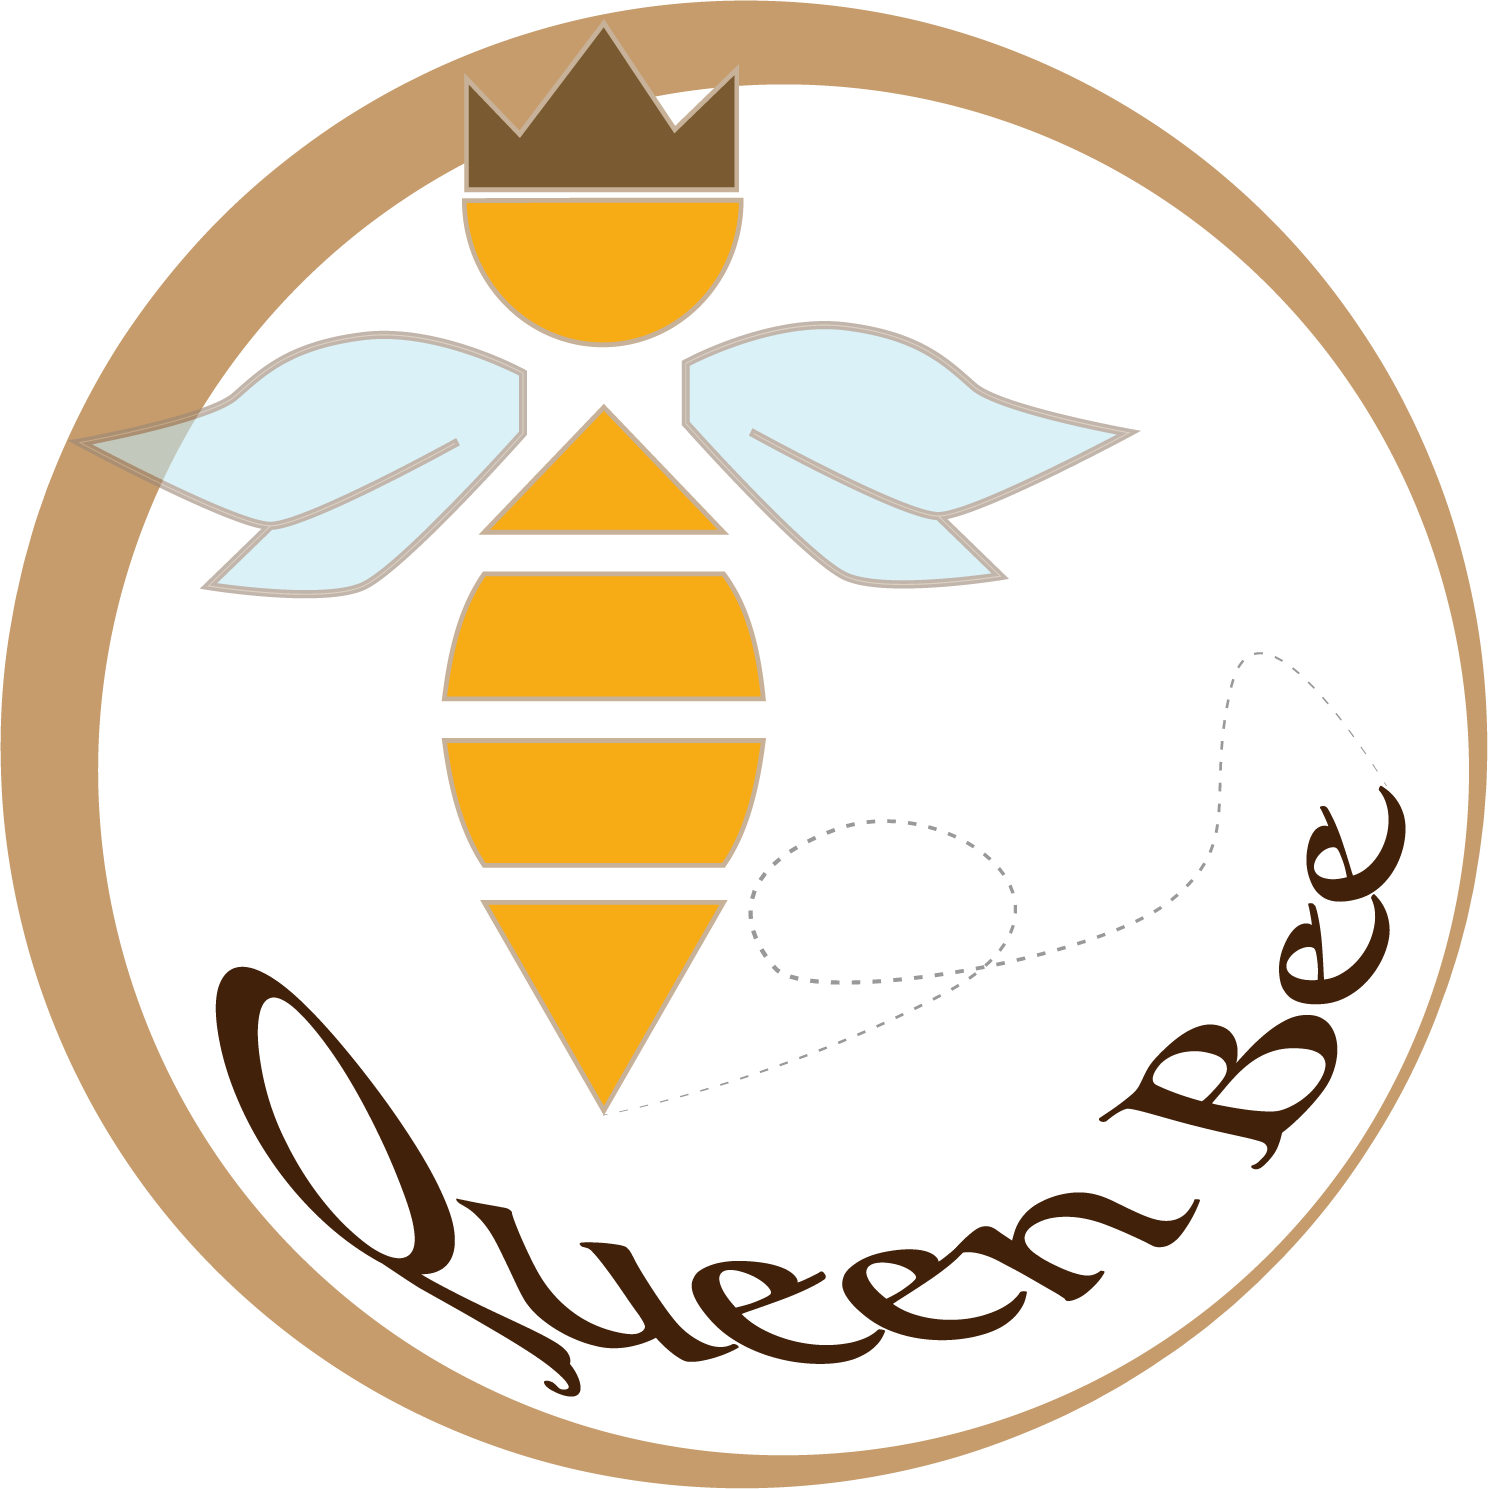 #keepqueenbeealive